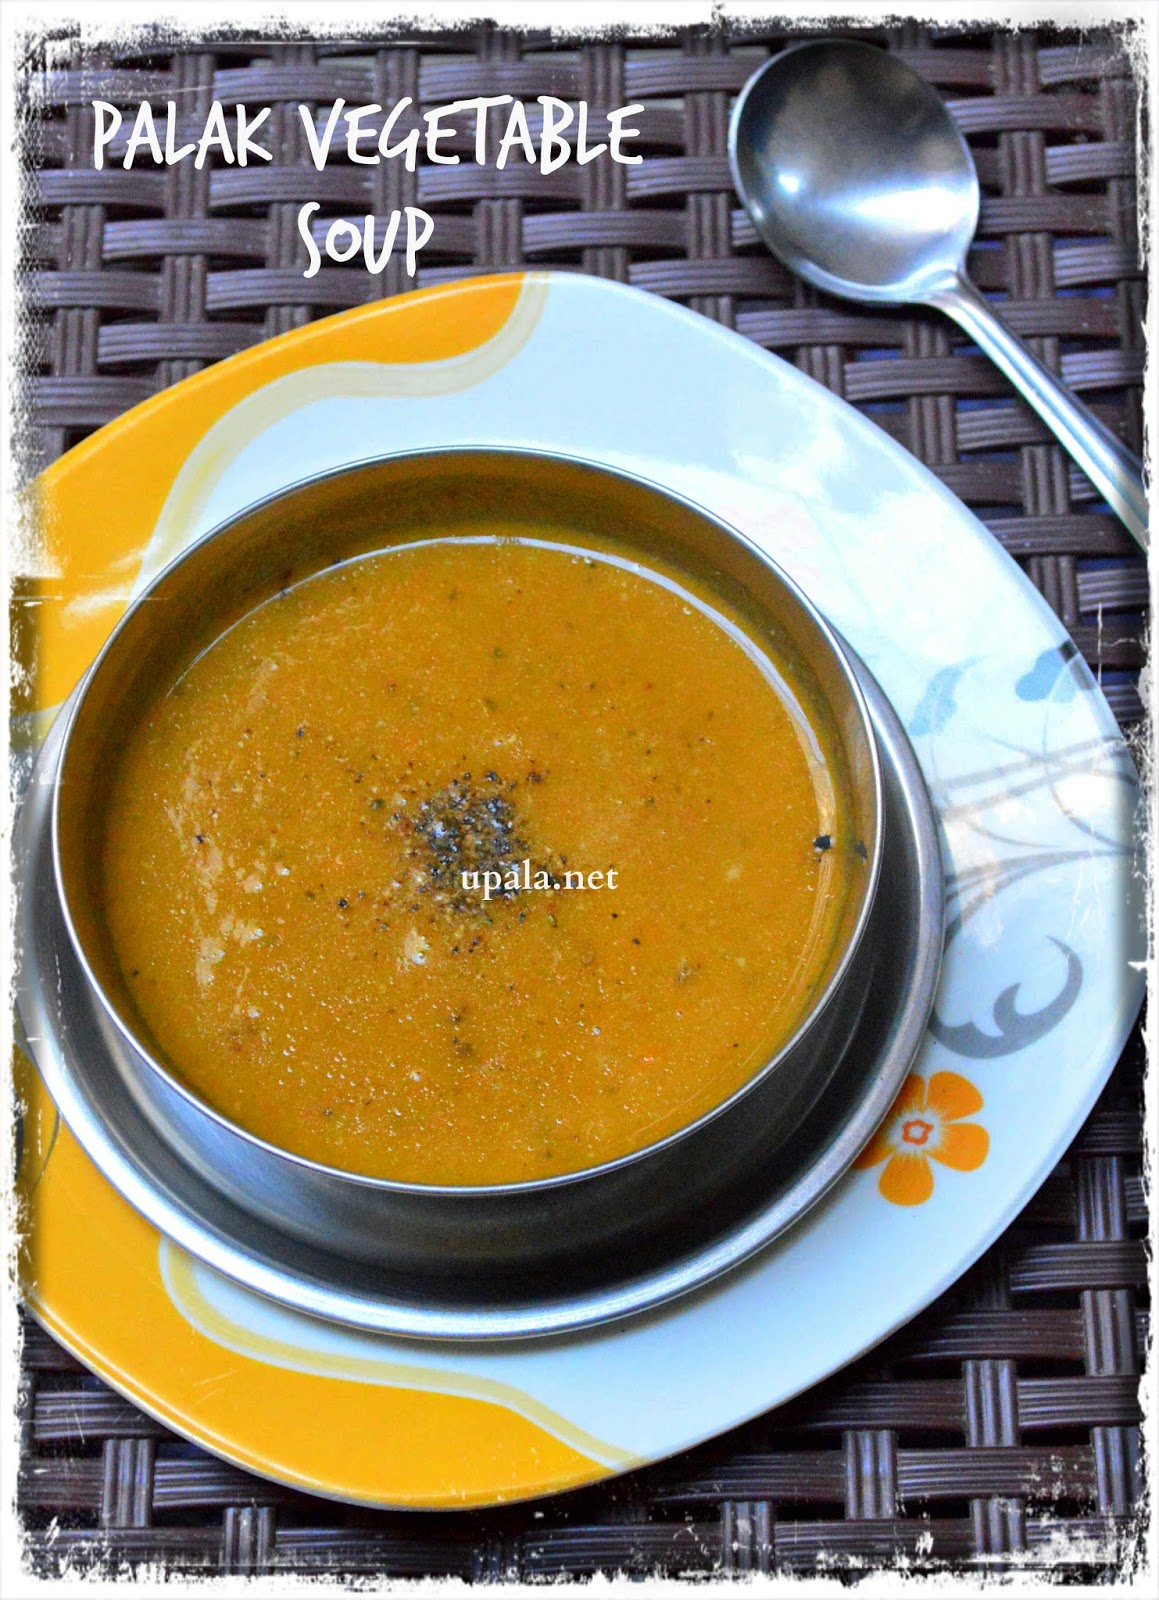 Palak Vegetable soup